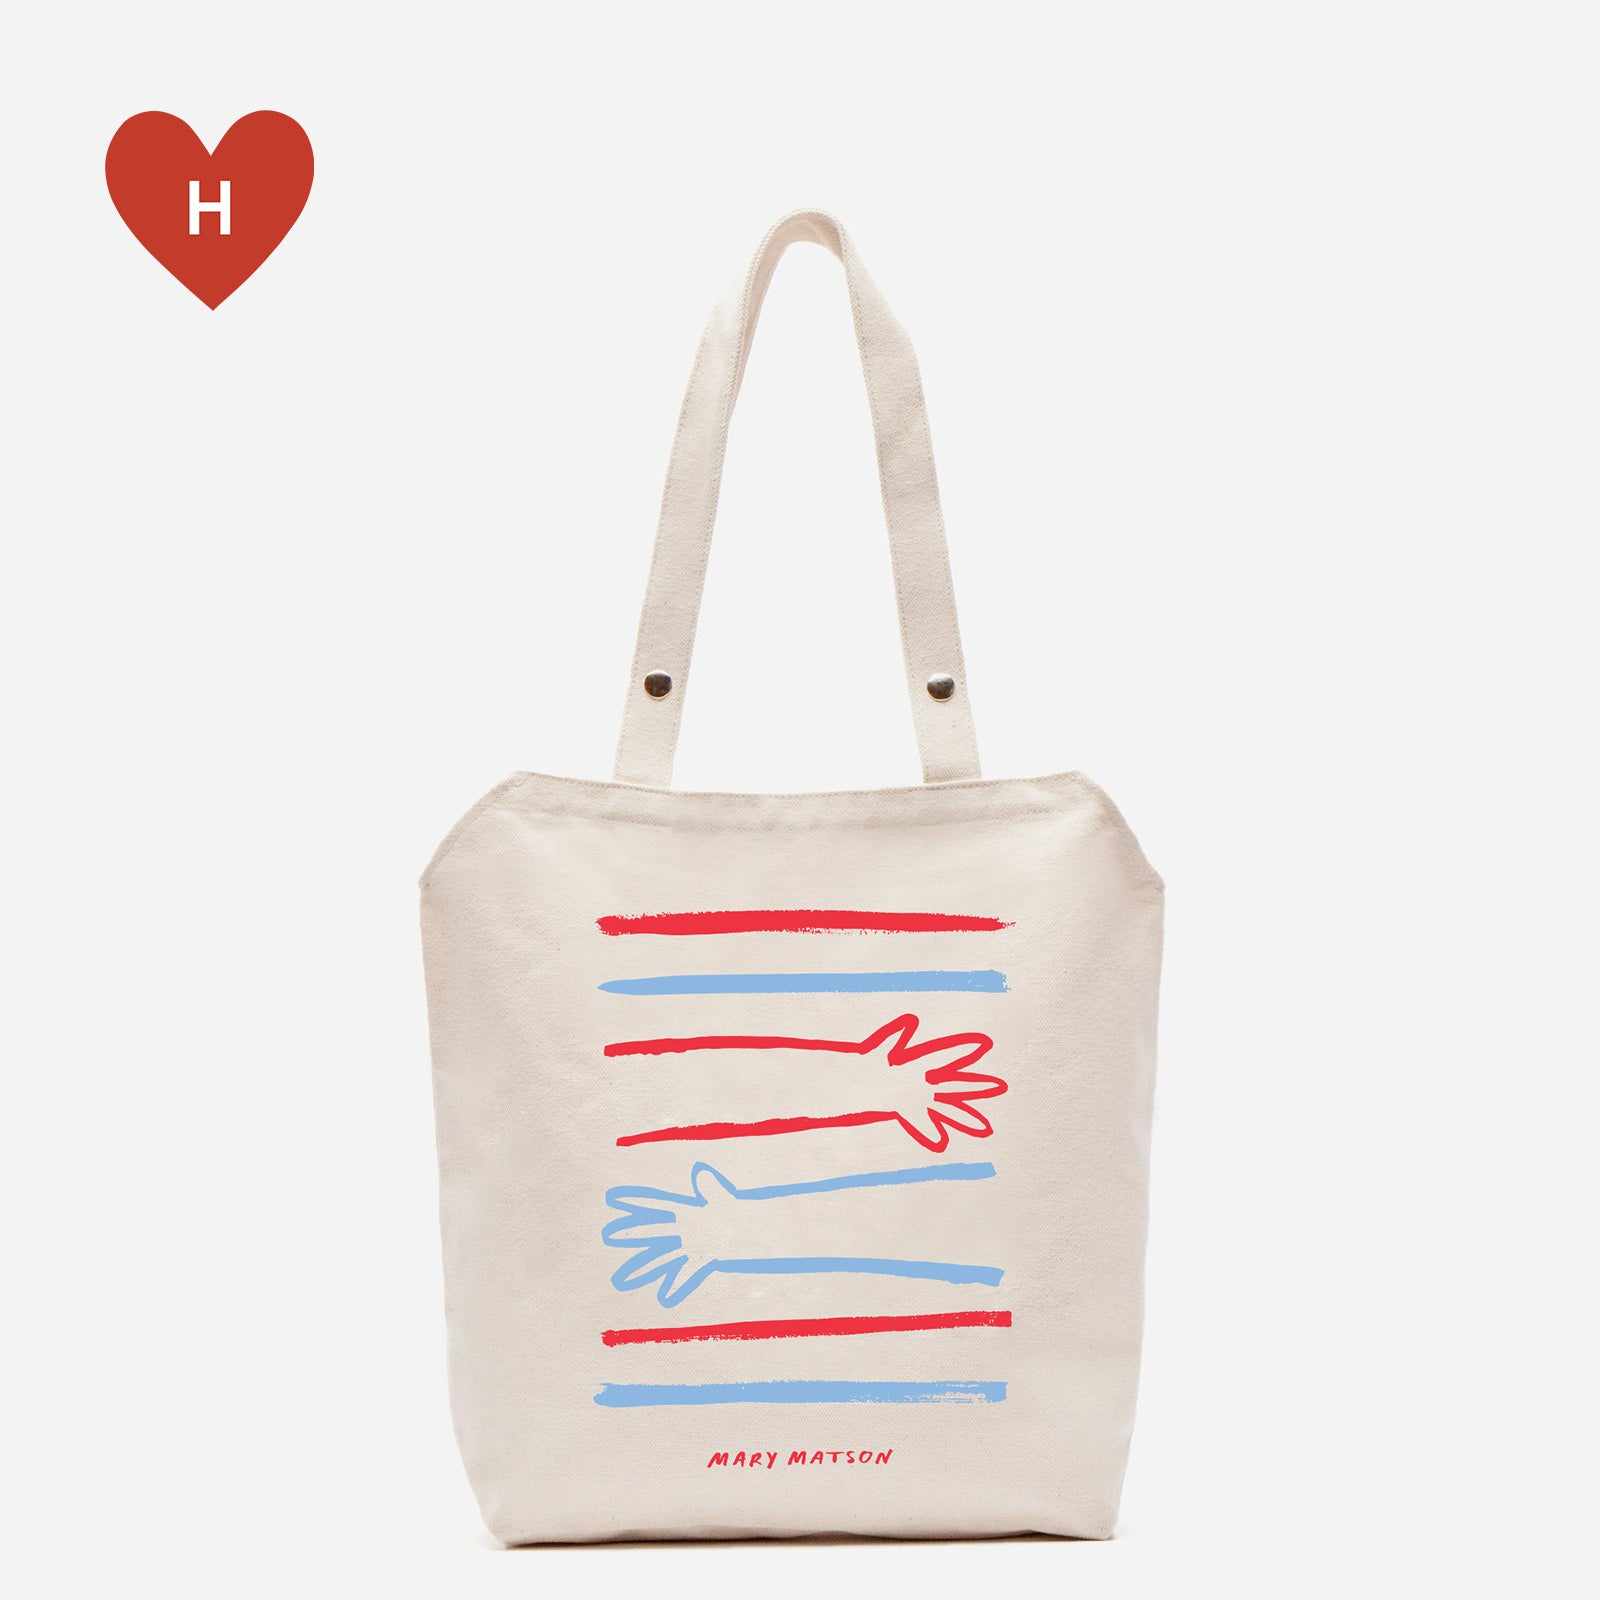 *DONATE TO A HEALTHCARE HERO* Big Hug Canvas Tote by Mary Matson - Frances Valentine